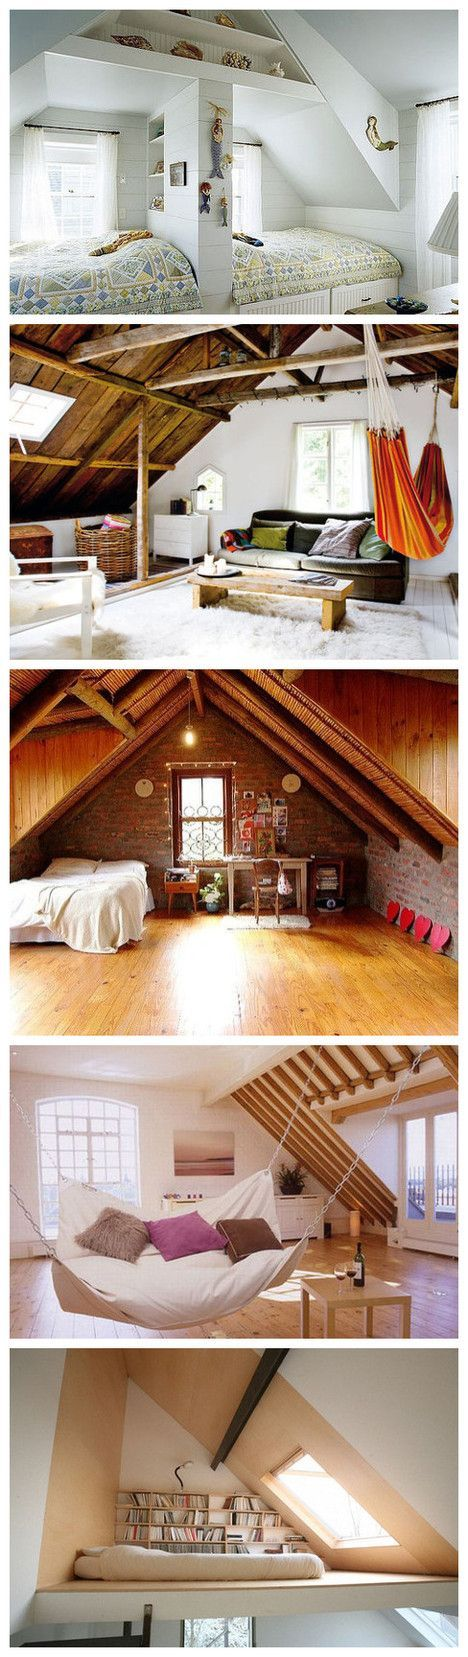 Great Ideas For My Old Bedroom At The Stone House, That Room Is Now Occupied